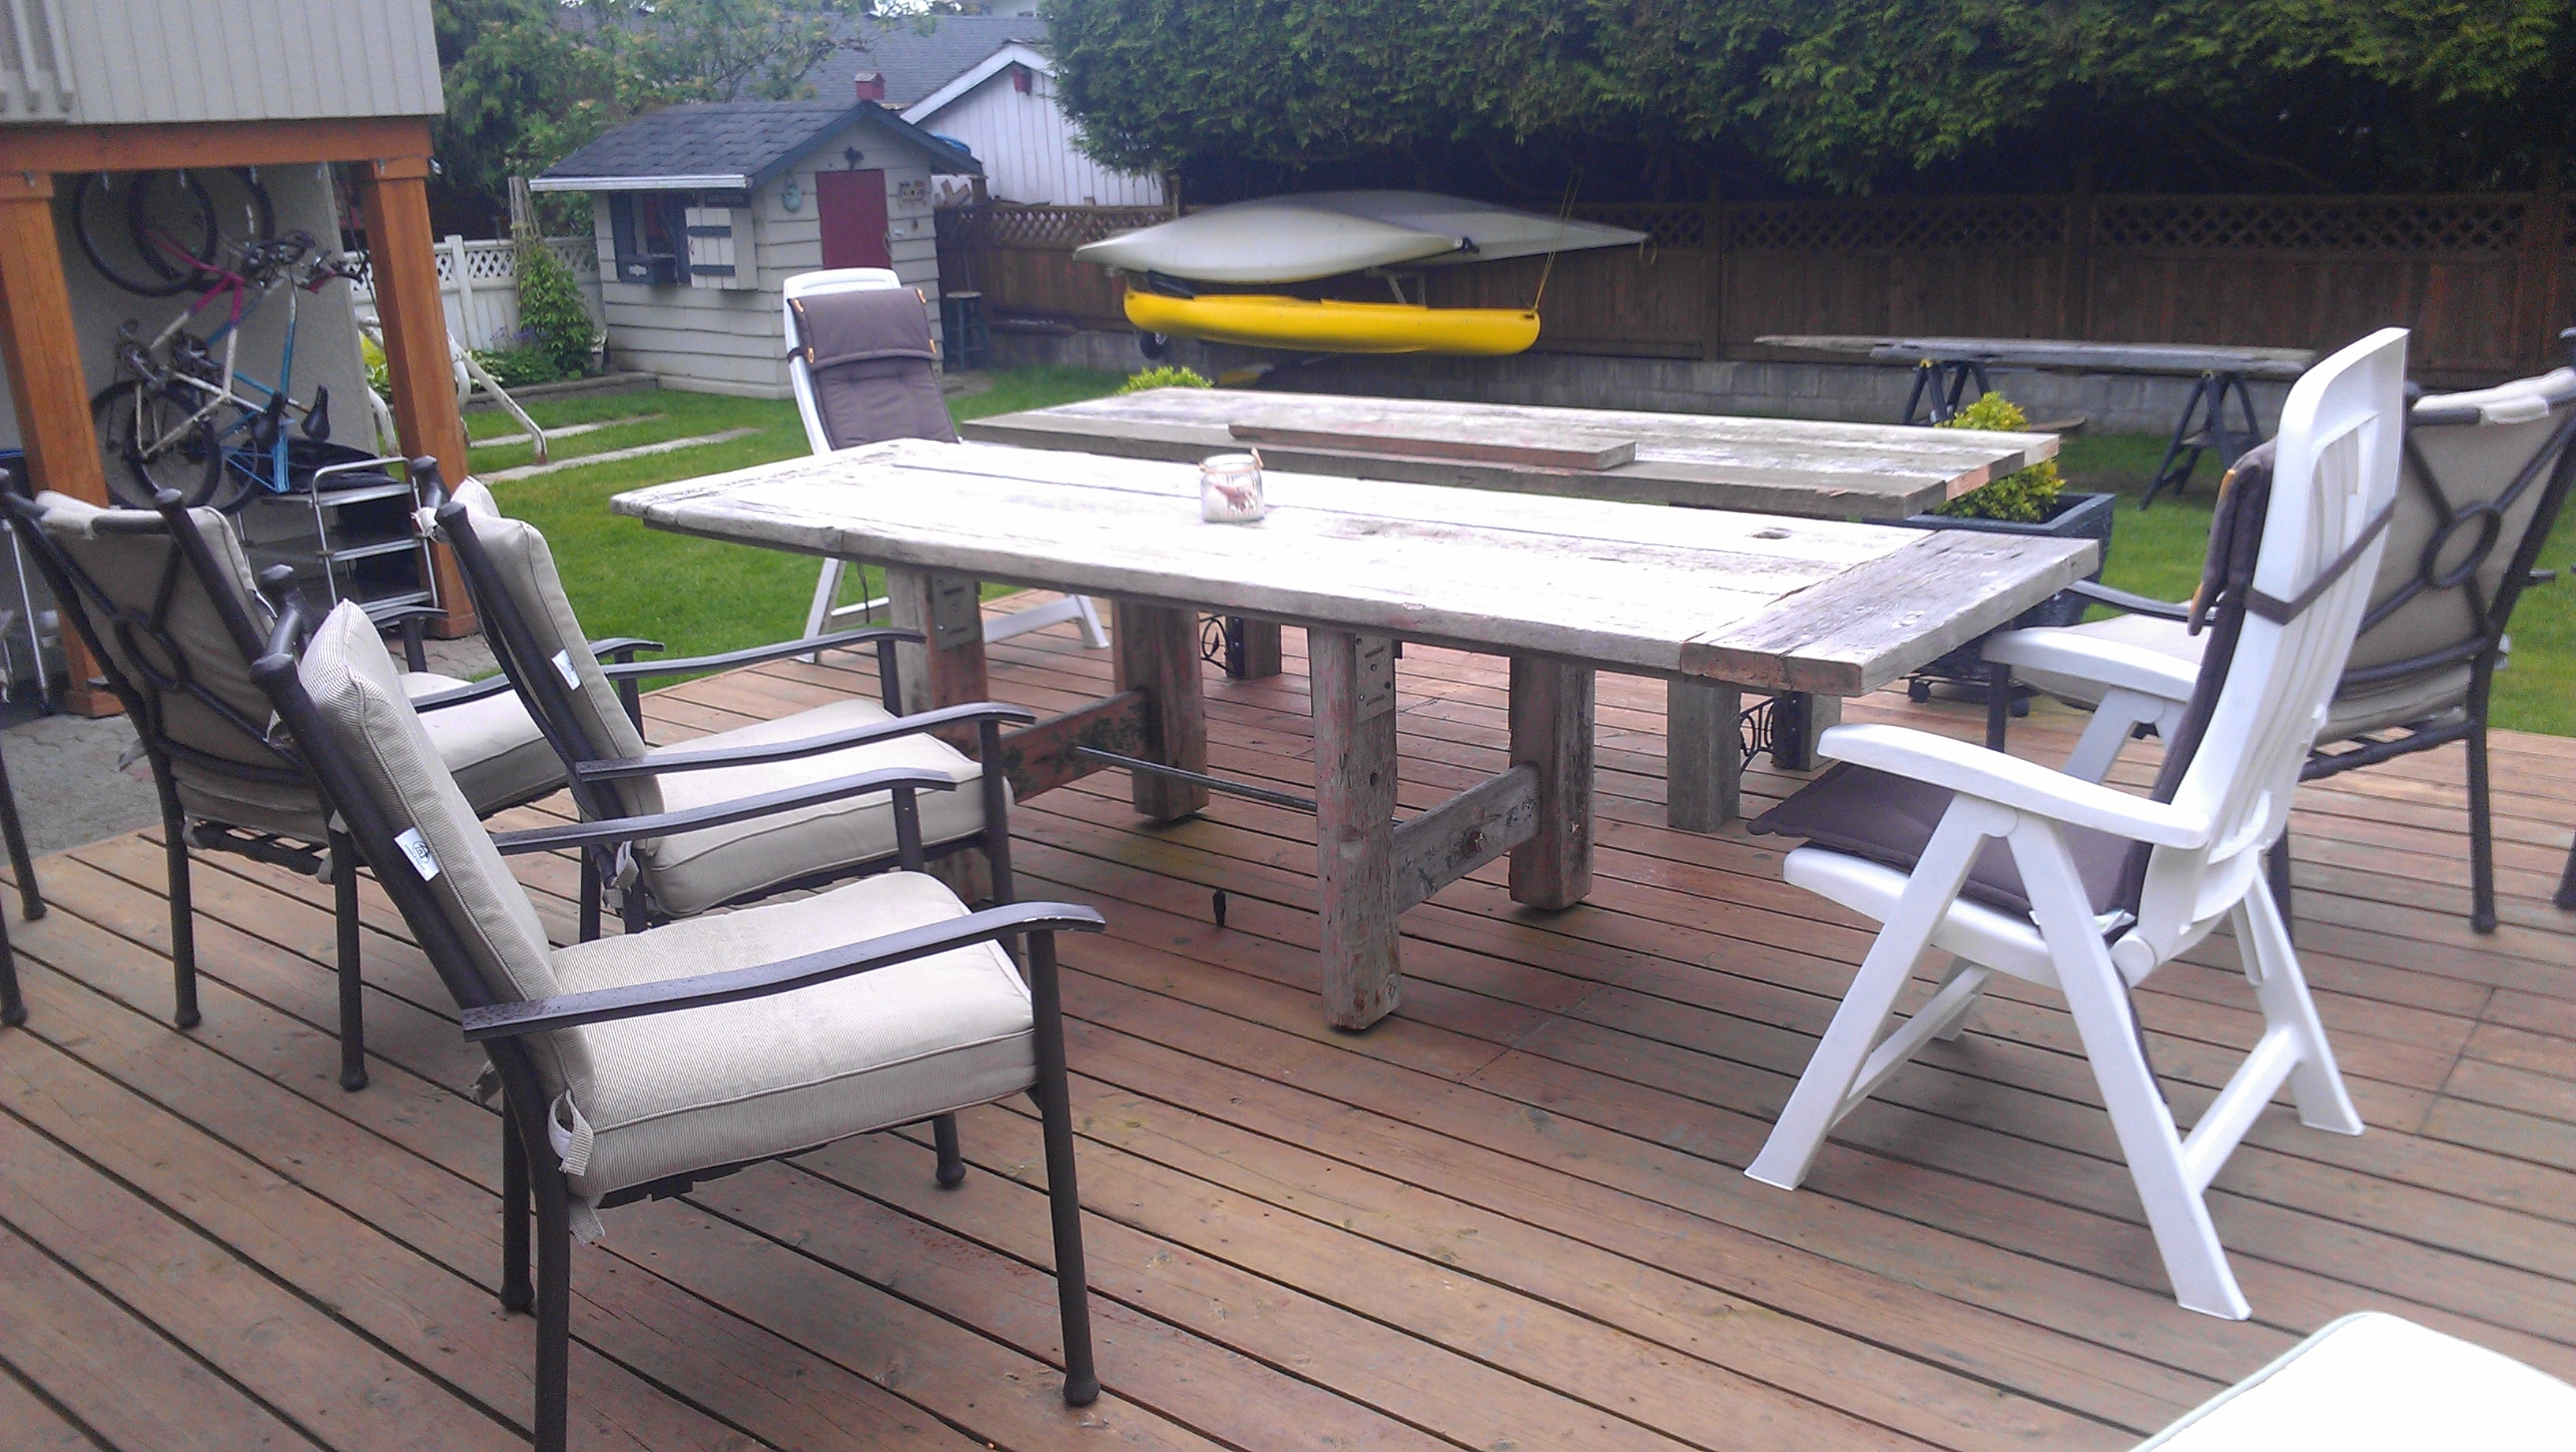 2018 Large Outdoor Table As Well Extra Patio Umbrellas With Plans Plus Regarding Extra Large Patio Umbrellas (View 2 of 20)